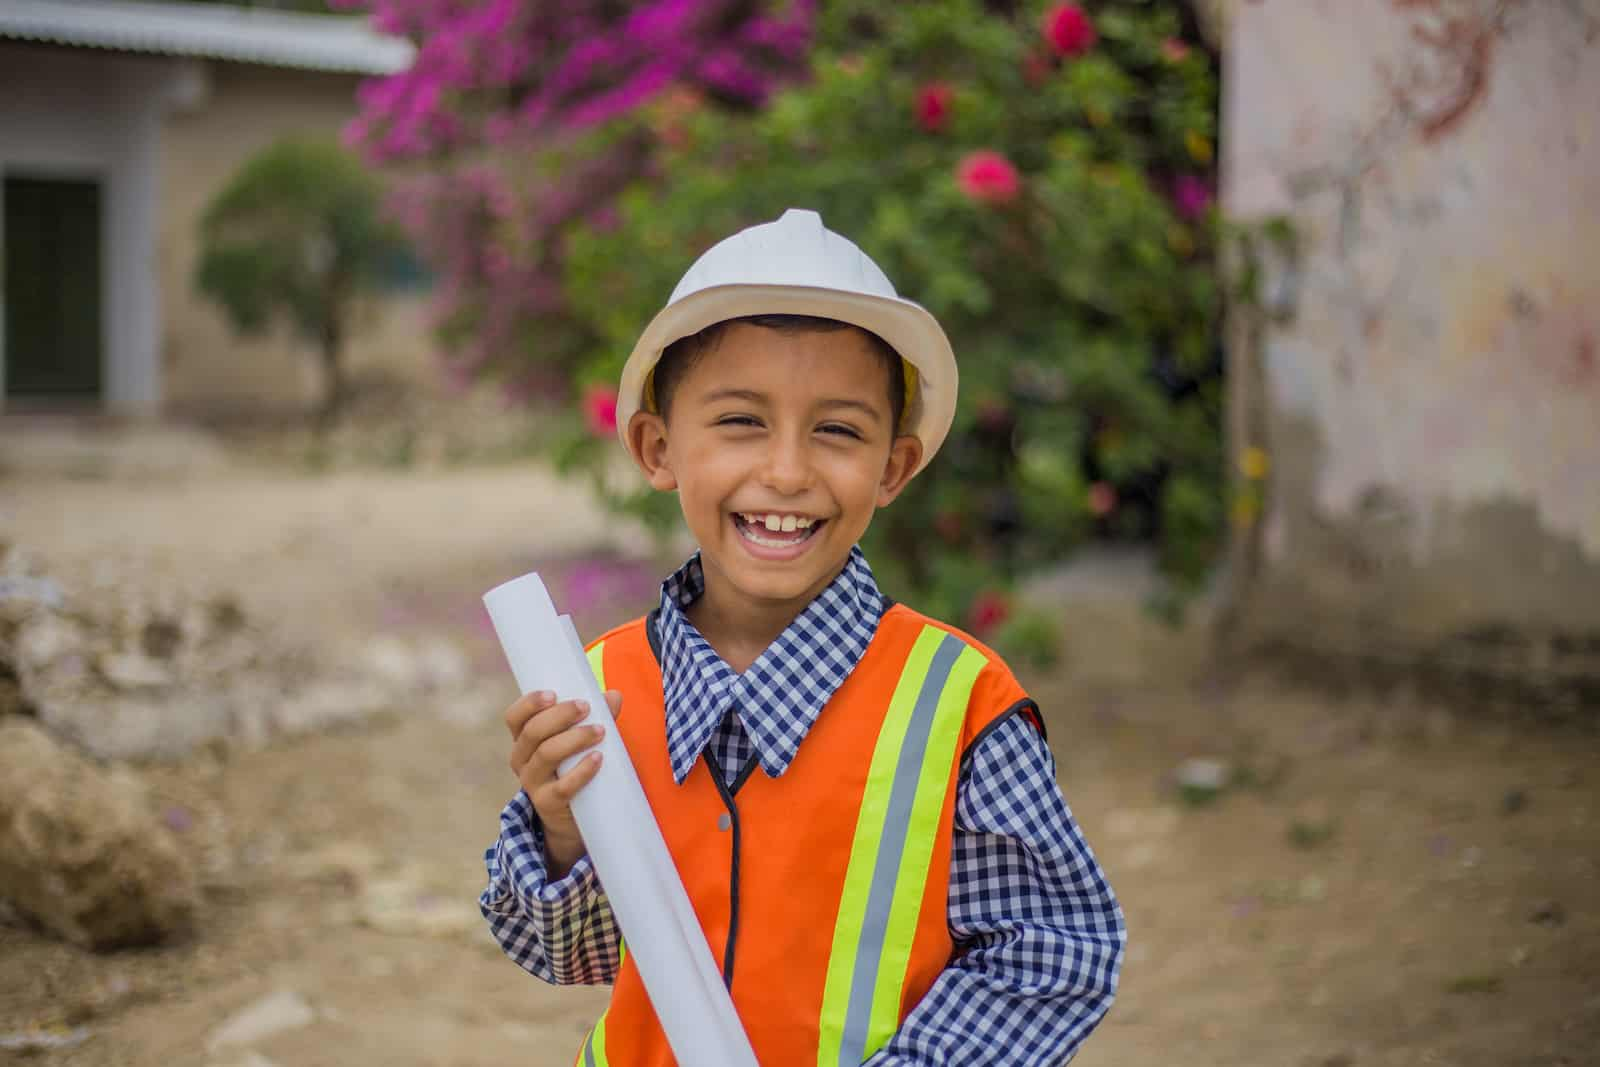 A boy wears a orange safety vest over a blue shirt, along with a hard hat. He holds a rolled up piece of paper, smiling at the camera. He stands on a street in front of a bush with pink flowers.